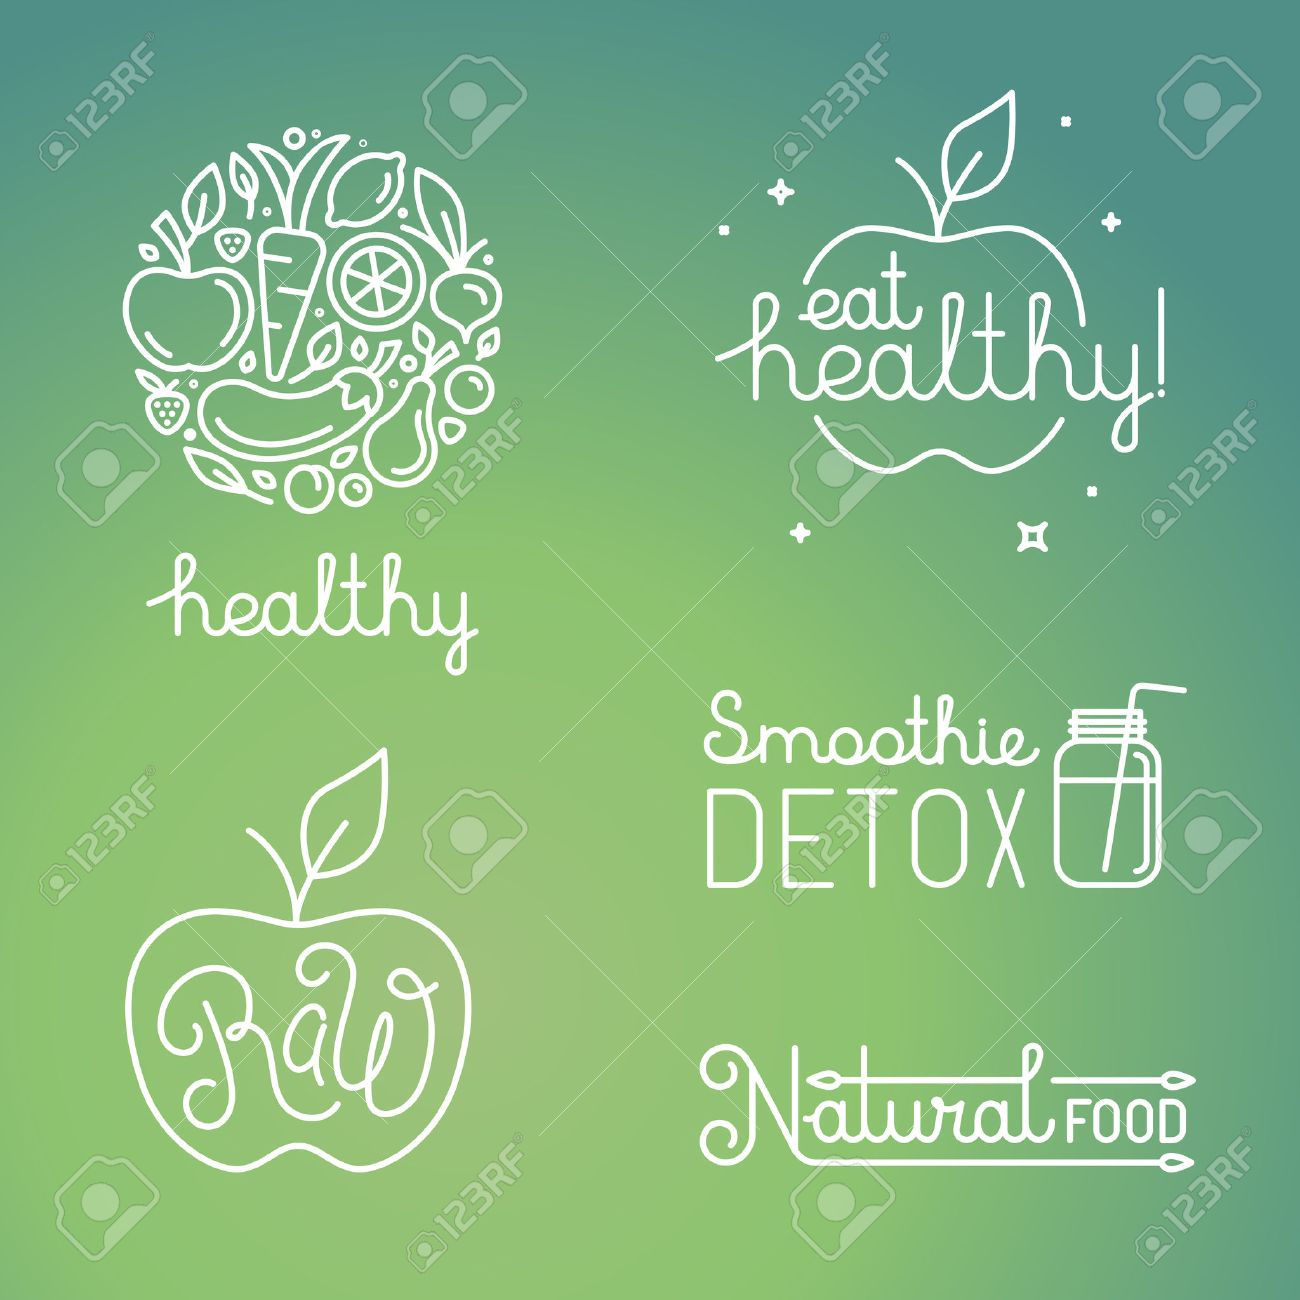 Vector healthy food and organic fruits concepts and logo design templates in trendy linear style - icons, signs and emblems related to vegan and raw organic food Stock Vector - 47663763